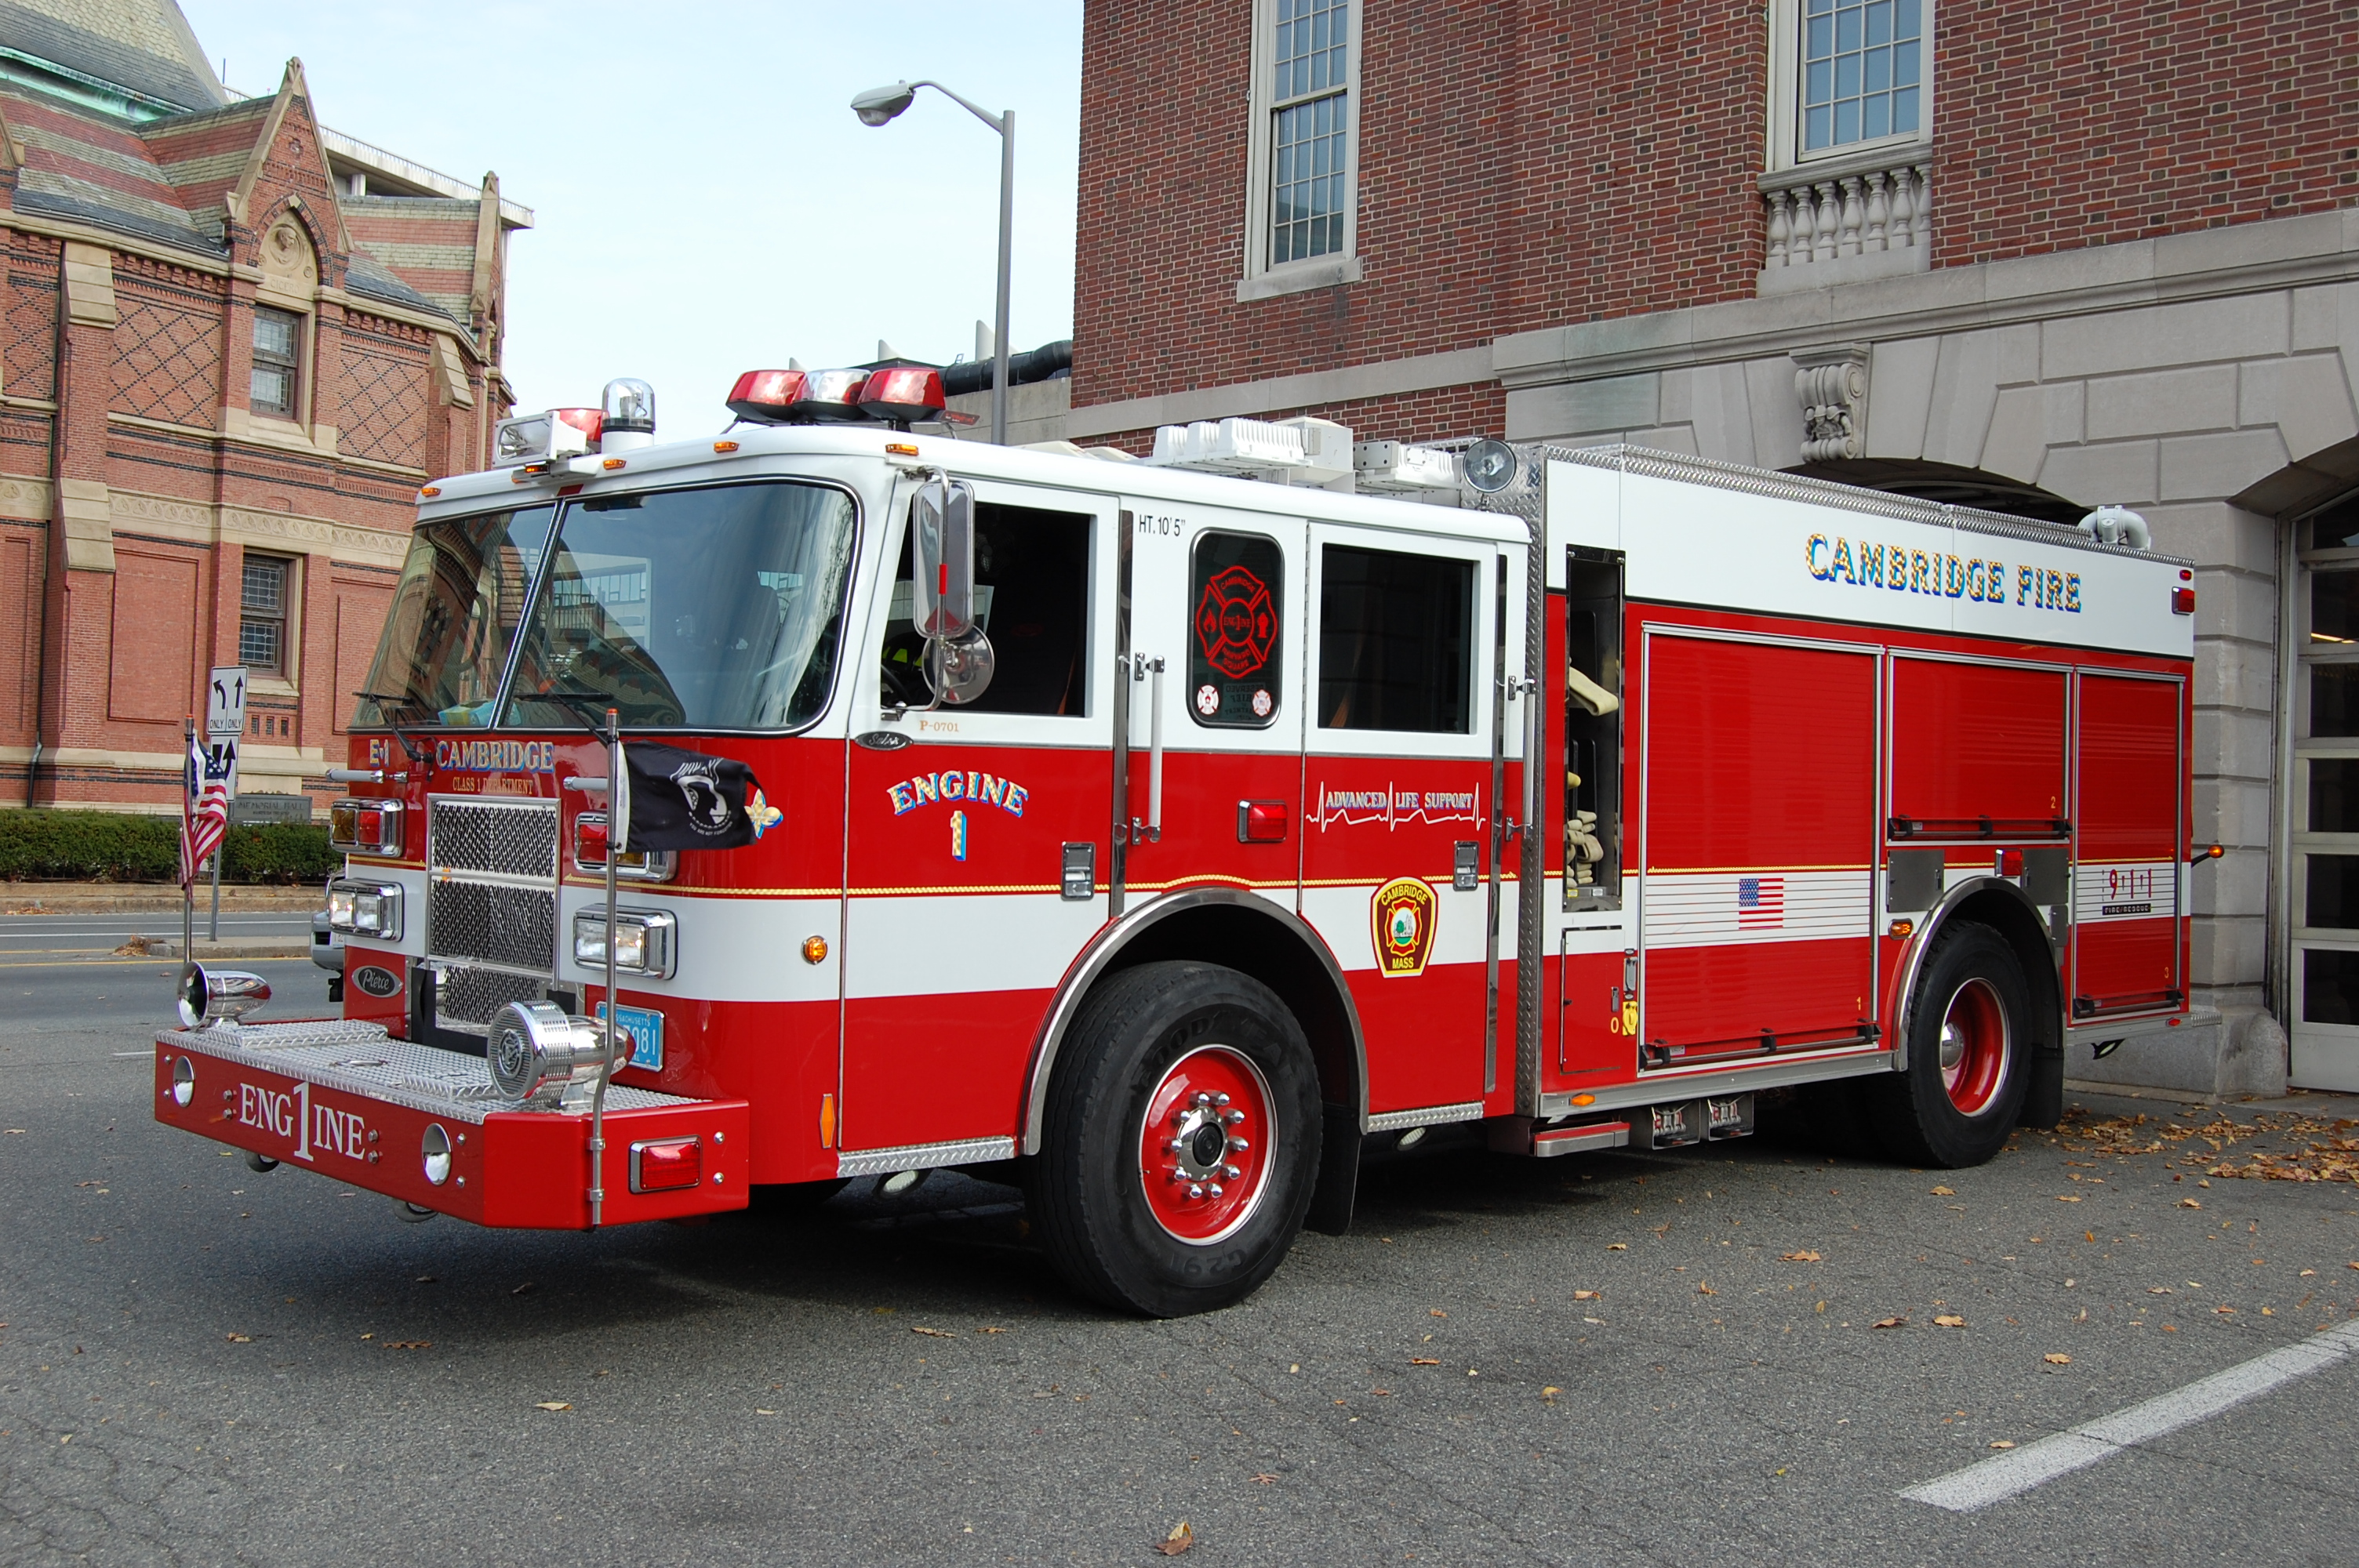 Cambridge Fire Engine 1